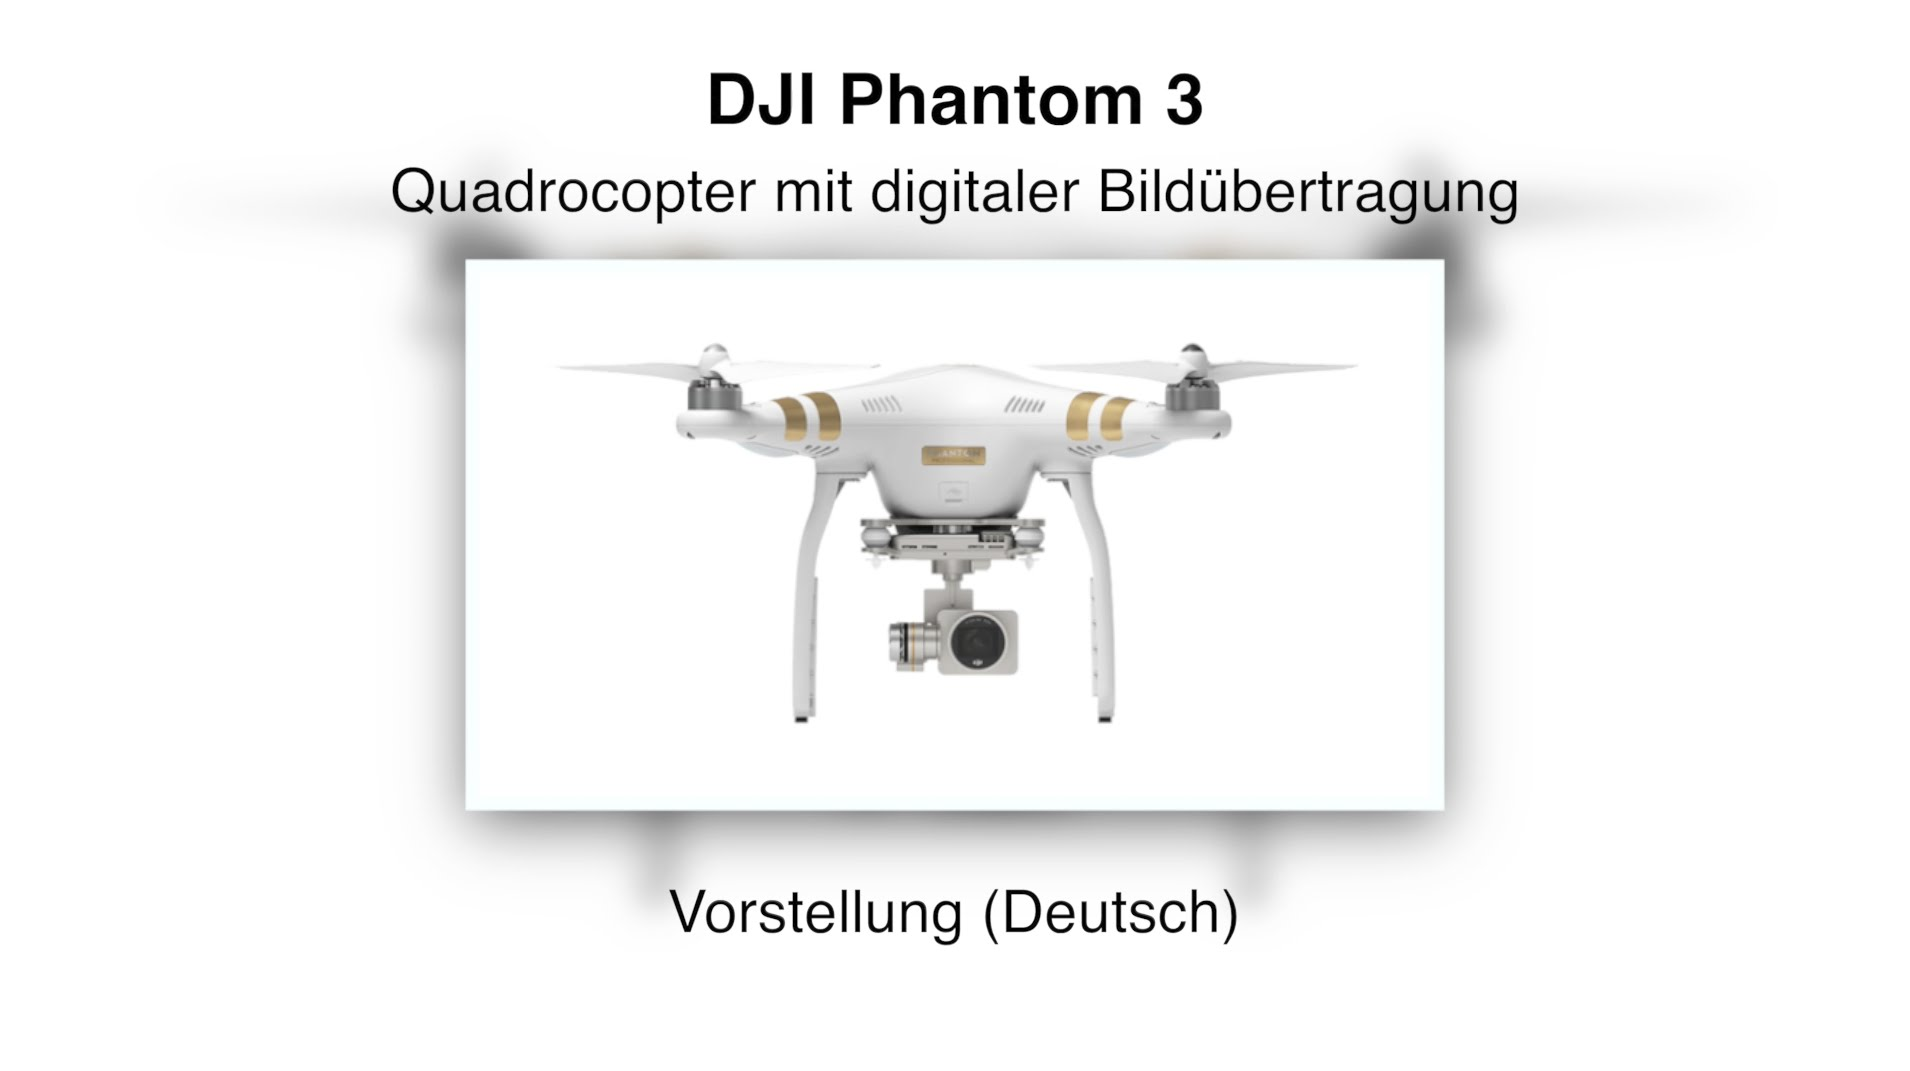 DJI Phantom 3 Unboxing